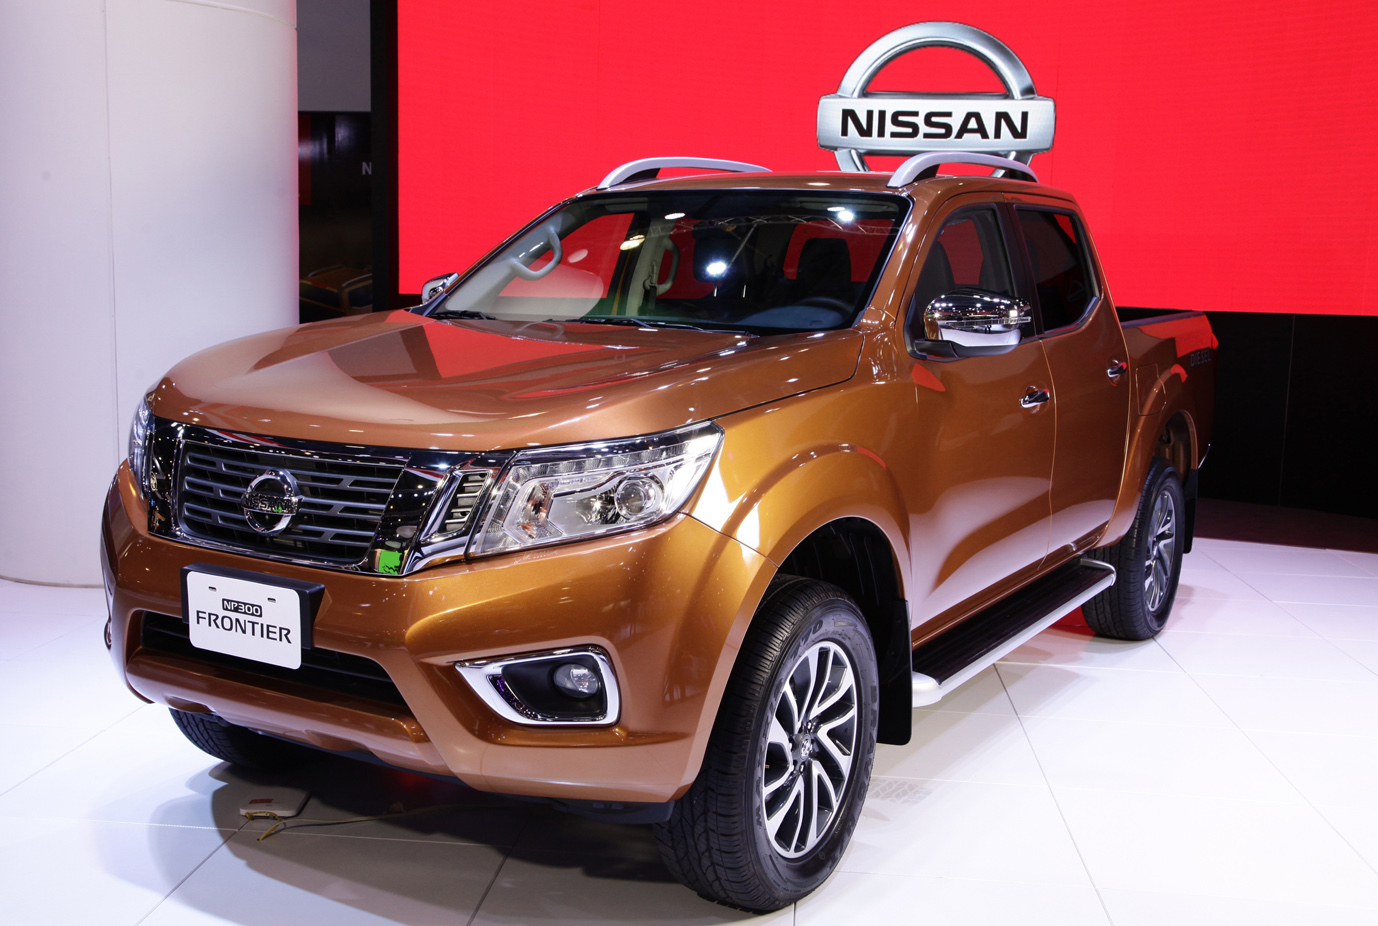 Nissan Frontier at the International Exhibition of Buenos Aires front three quarter